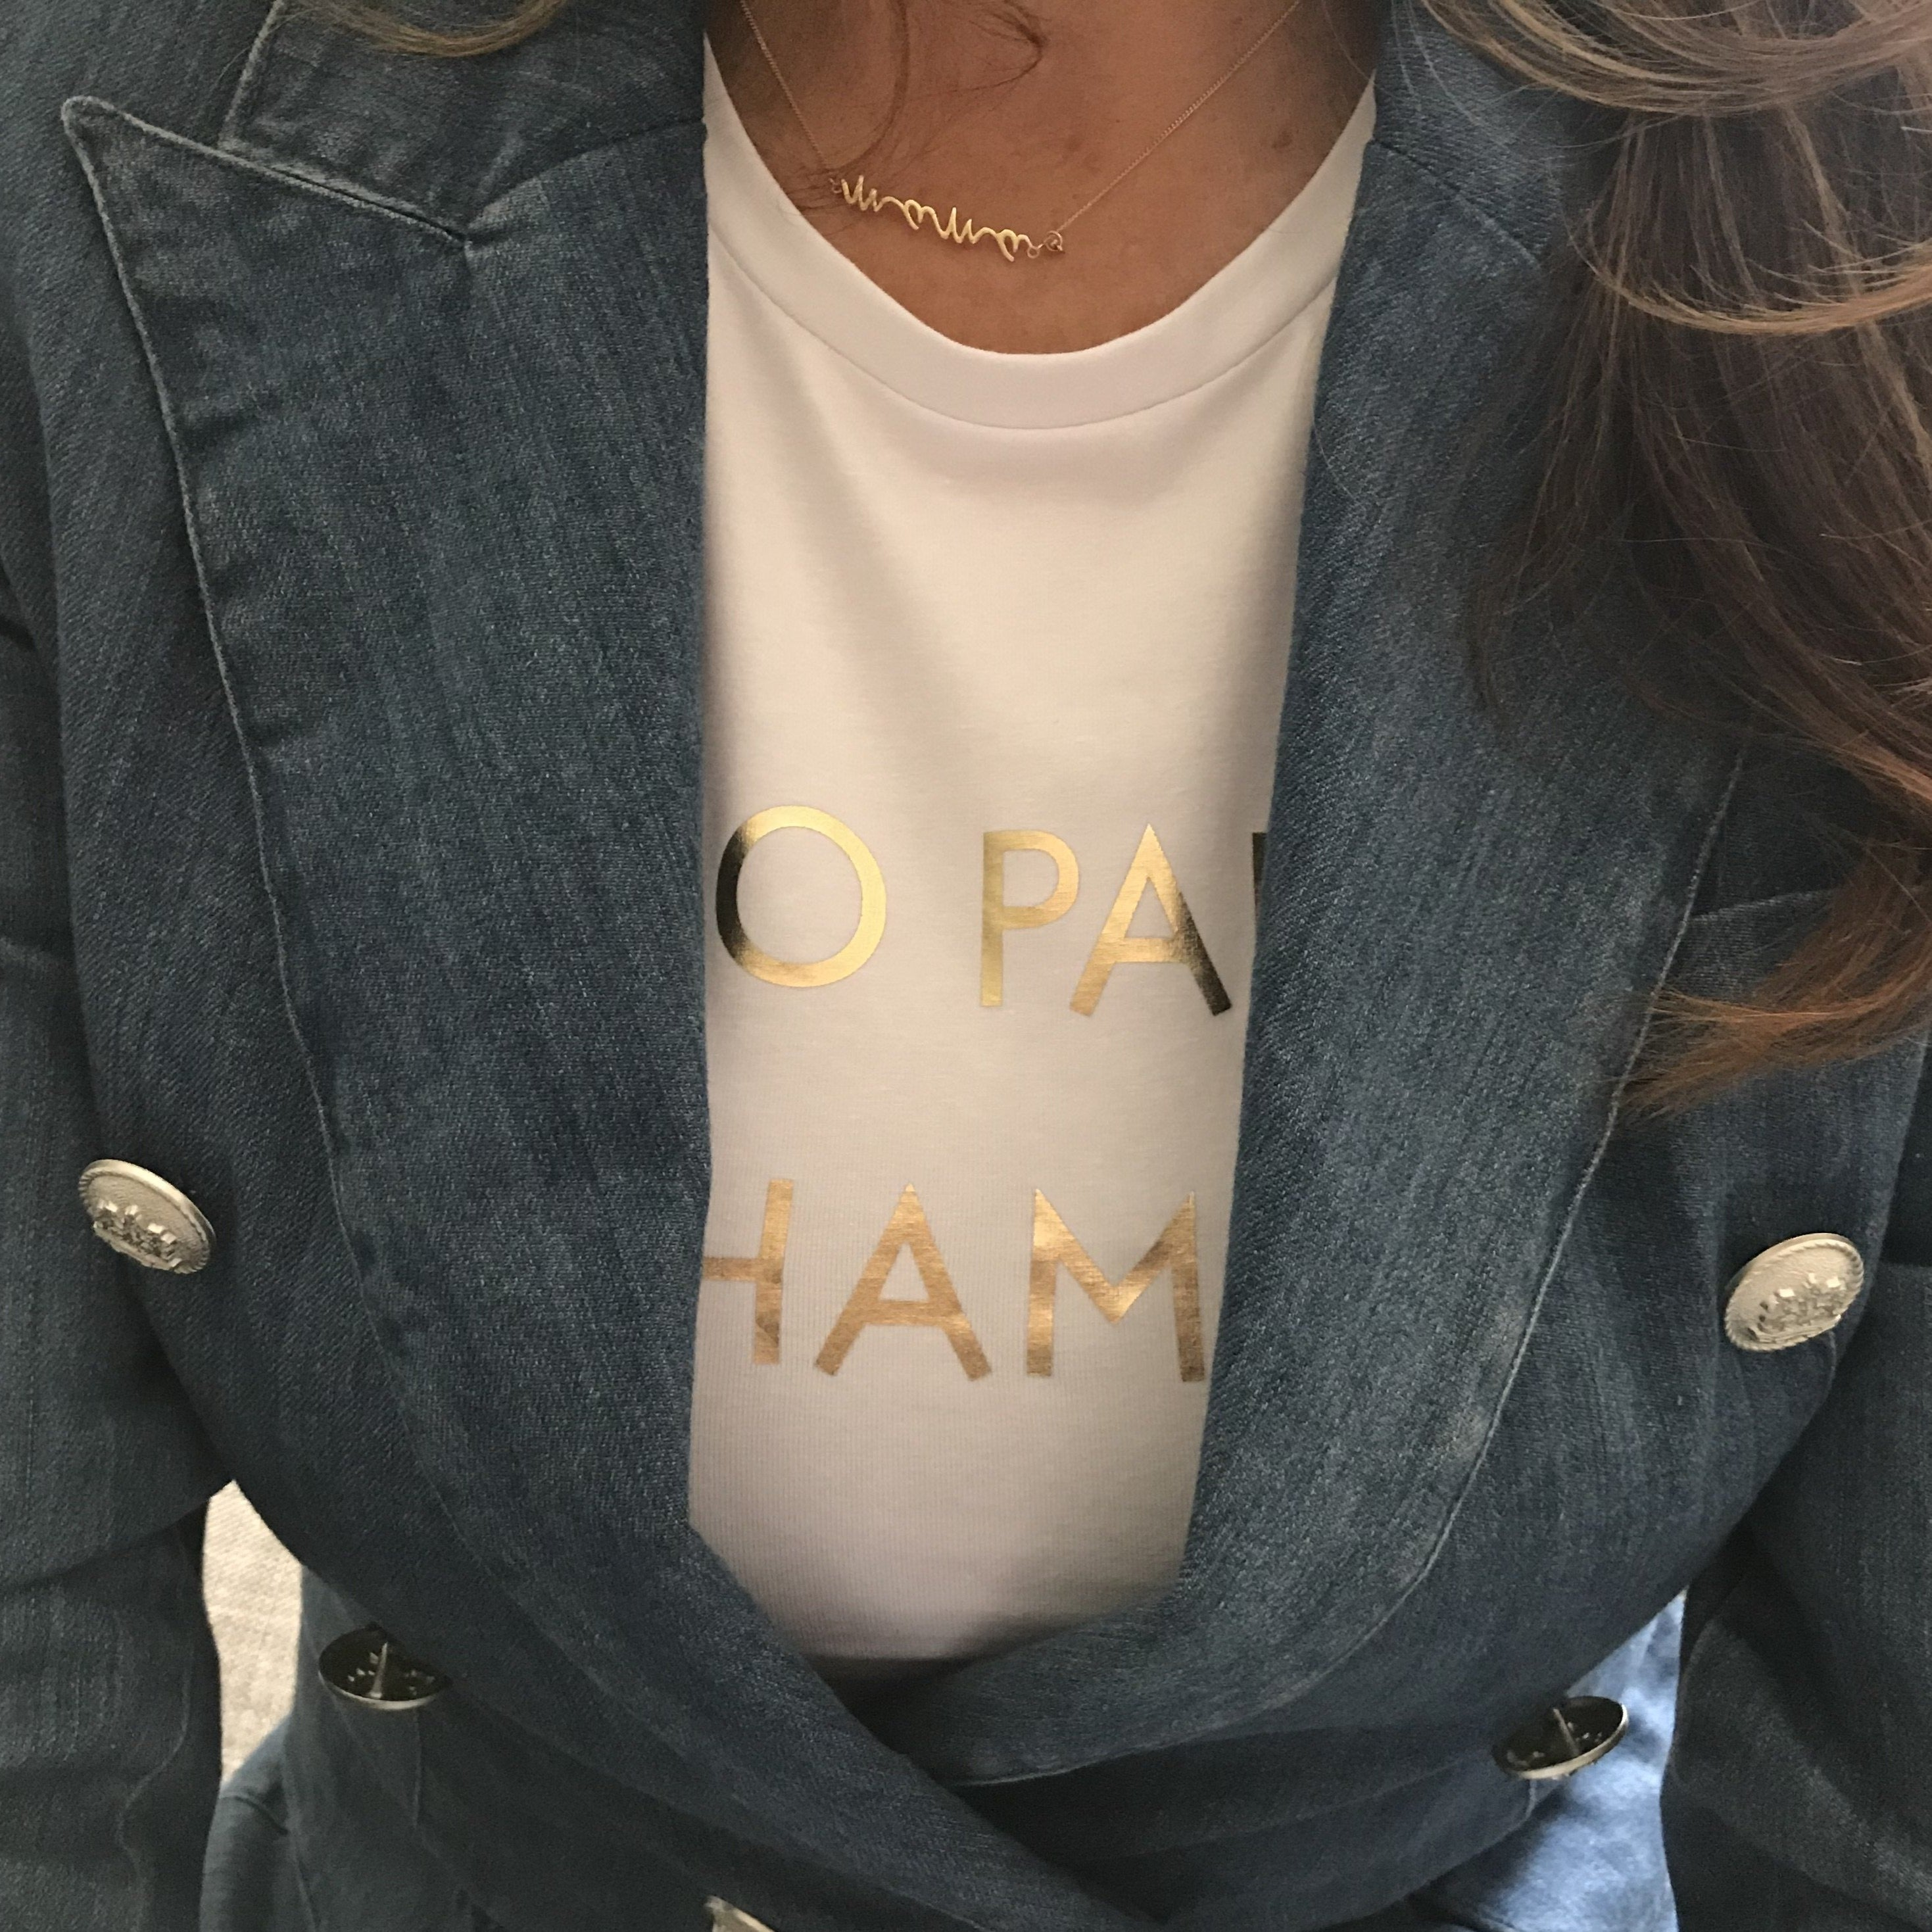 No Pain No Champagne - tee by Whistling Dixie